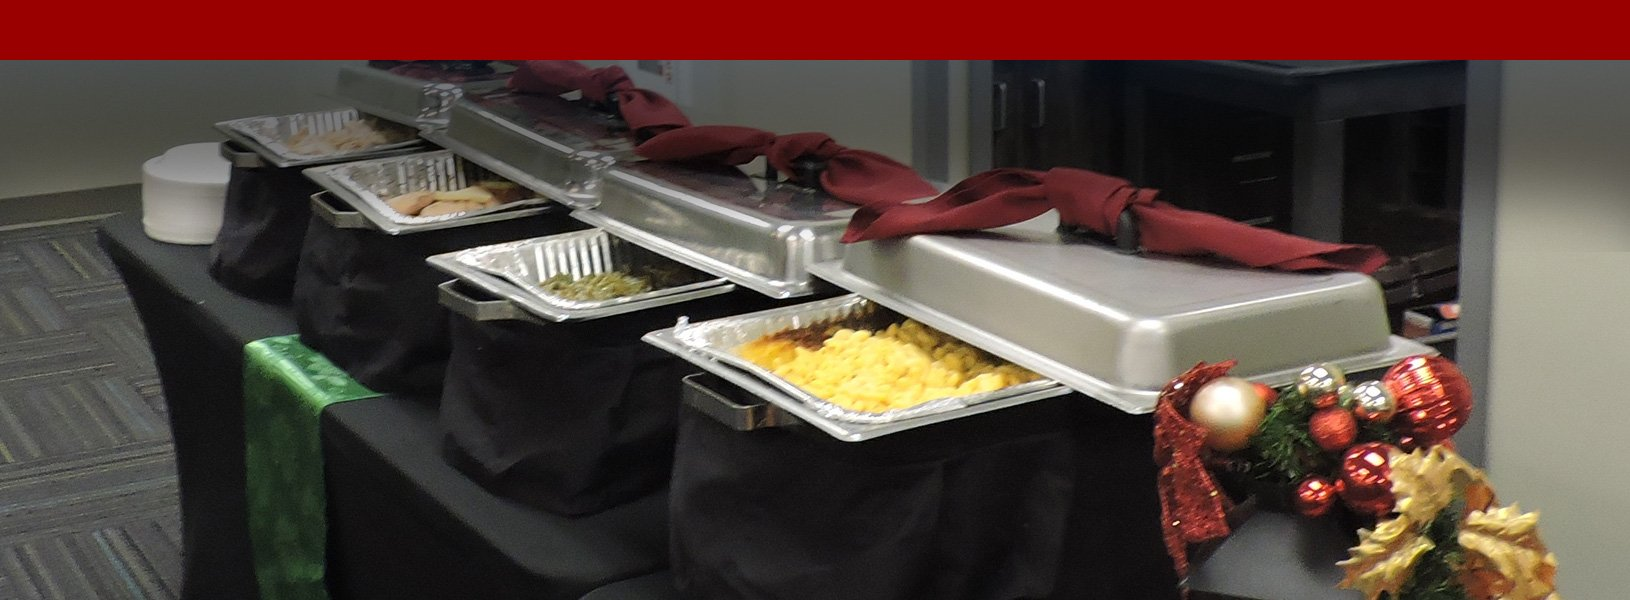 Holiday Buffet - Elite Event Catering Services